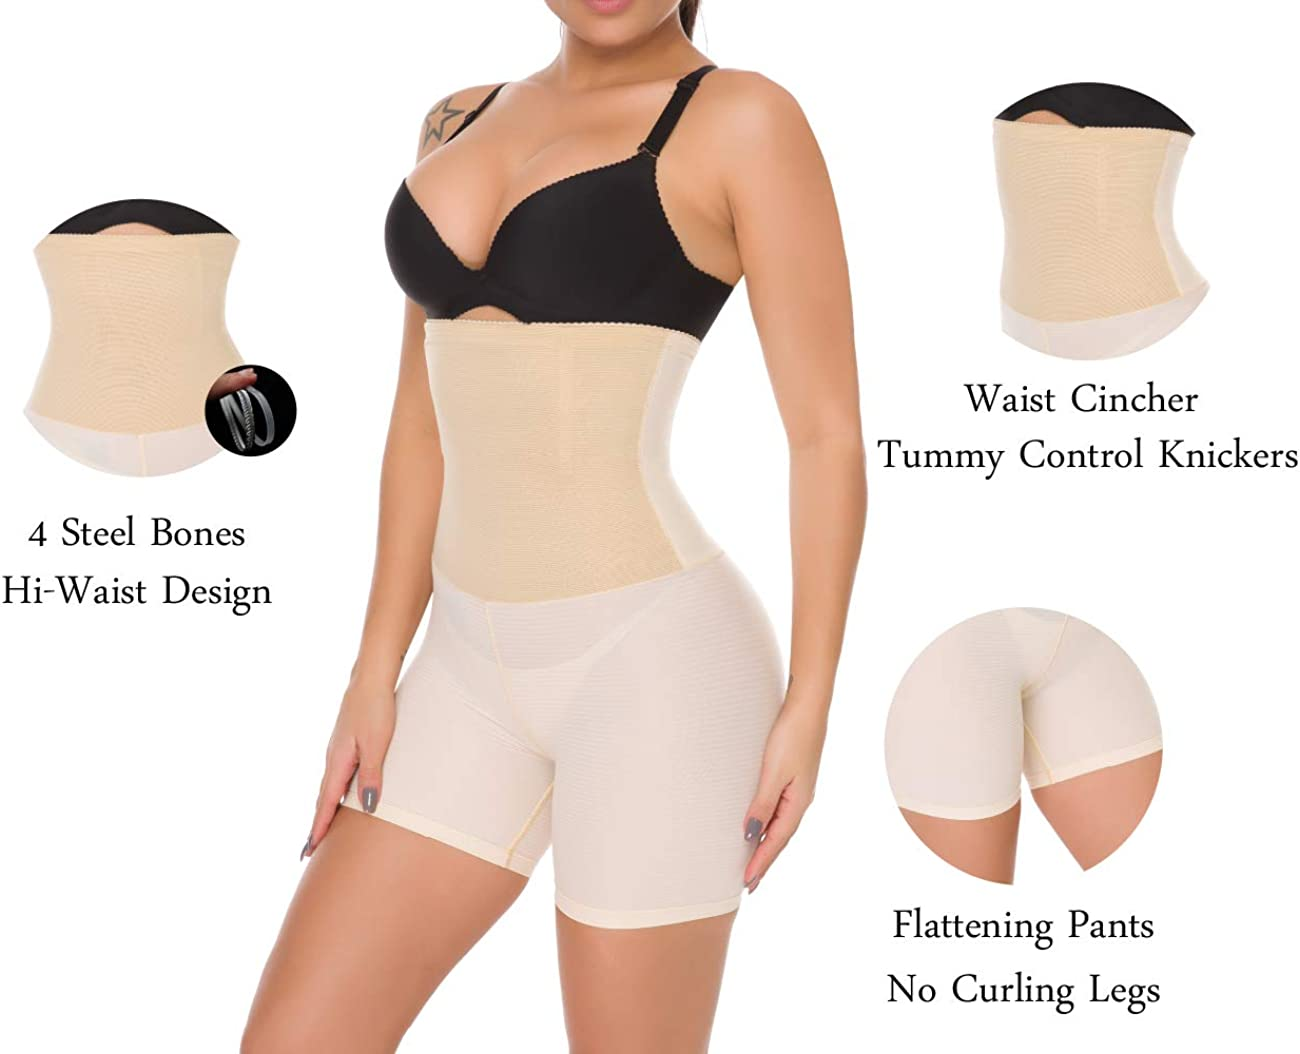 NINGMI Women High Waist Body Shaper Underwear Slimming Shapewear Tummy Control Knickers Panties